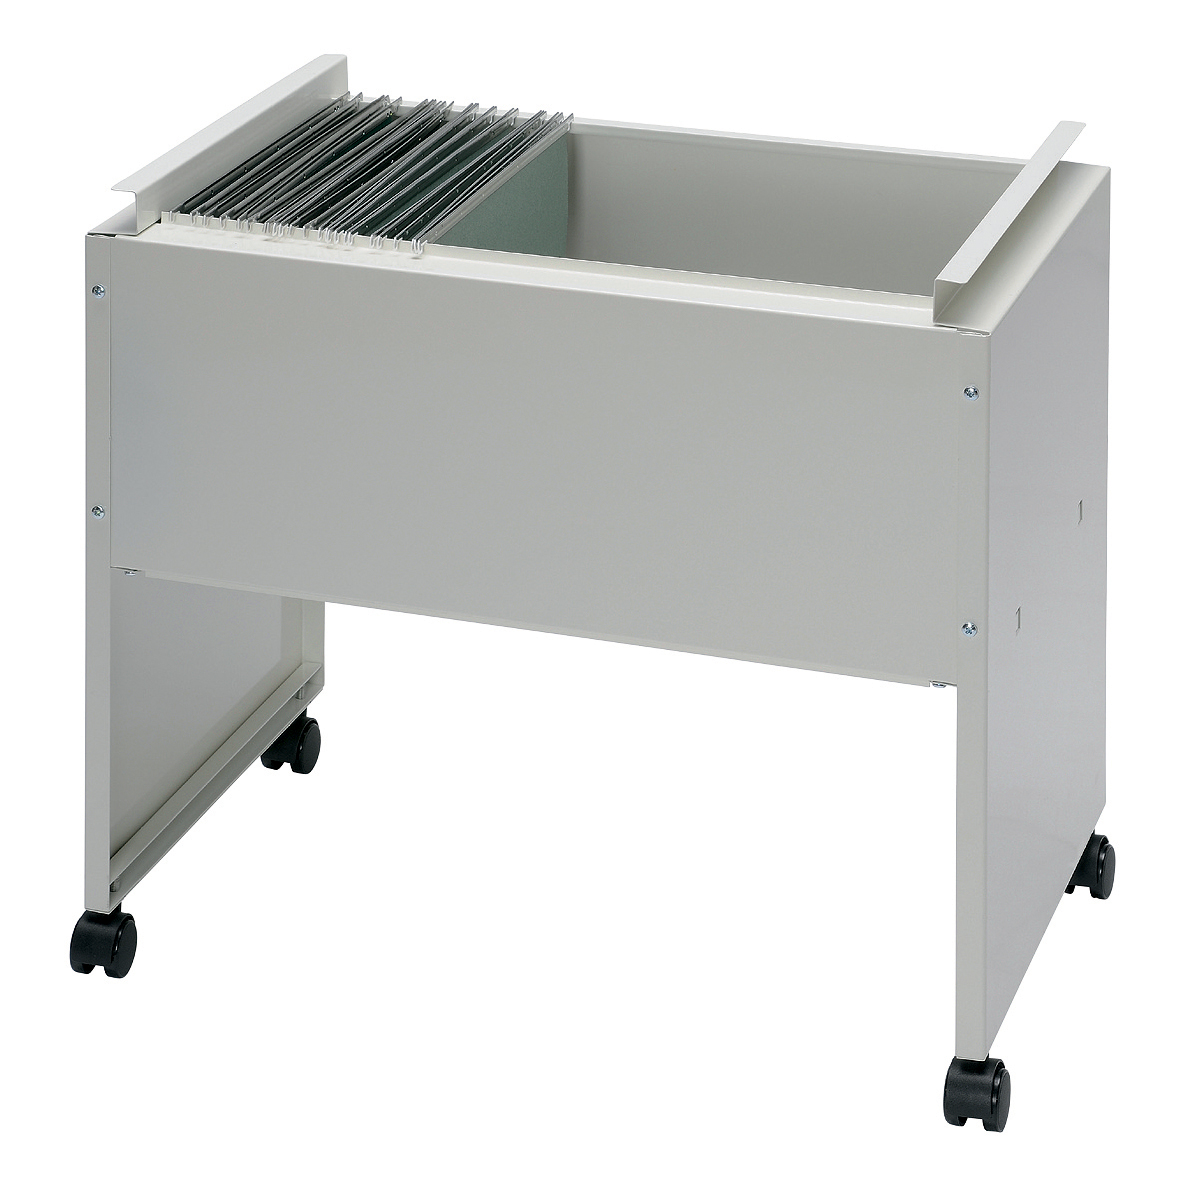 Trolleys or accessories Universal Filing Trolley Steel Capacity 120 A4 or Foolscap Susp Files W650xD420xH580mm Grey